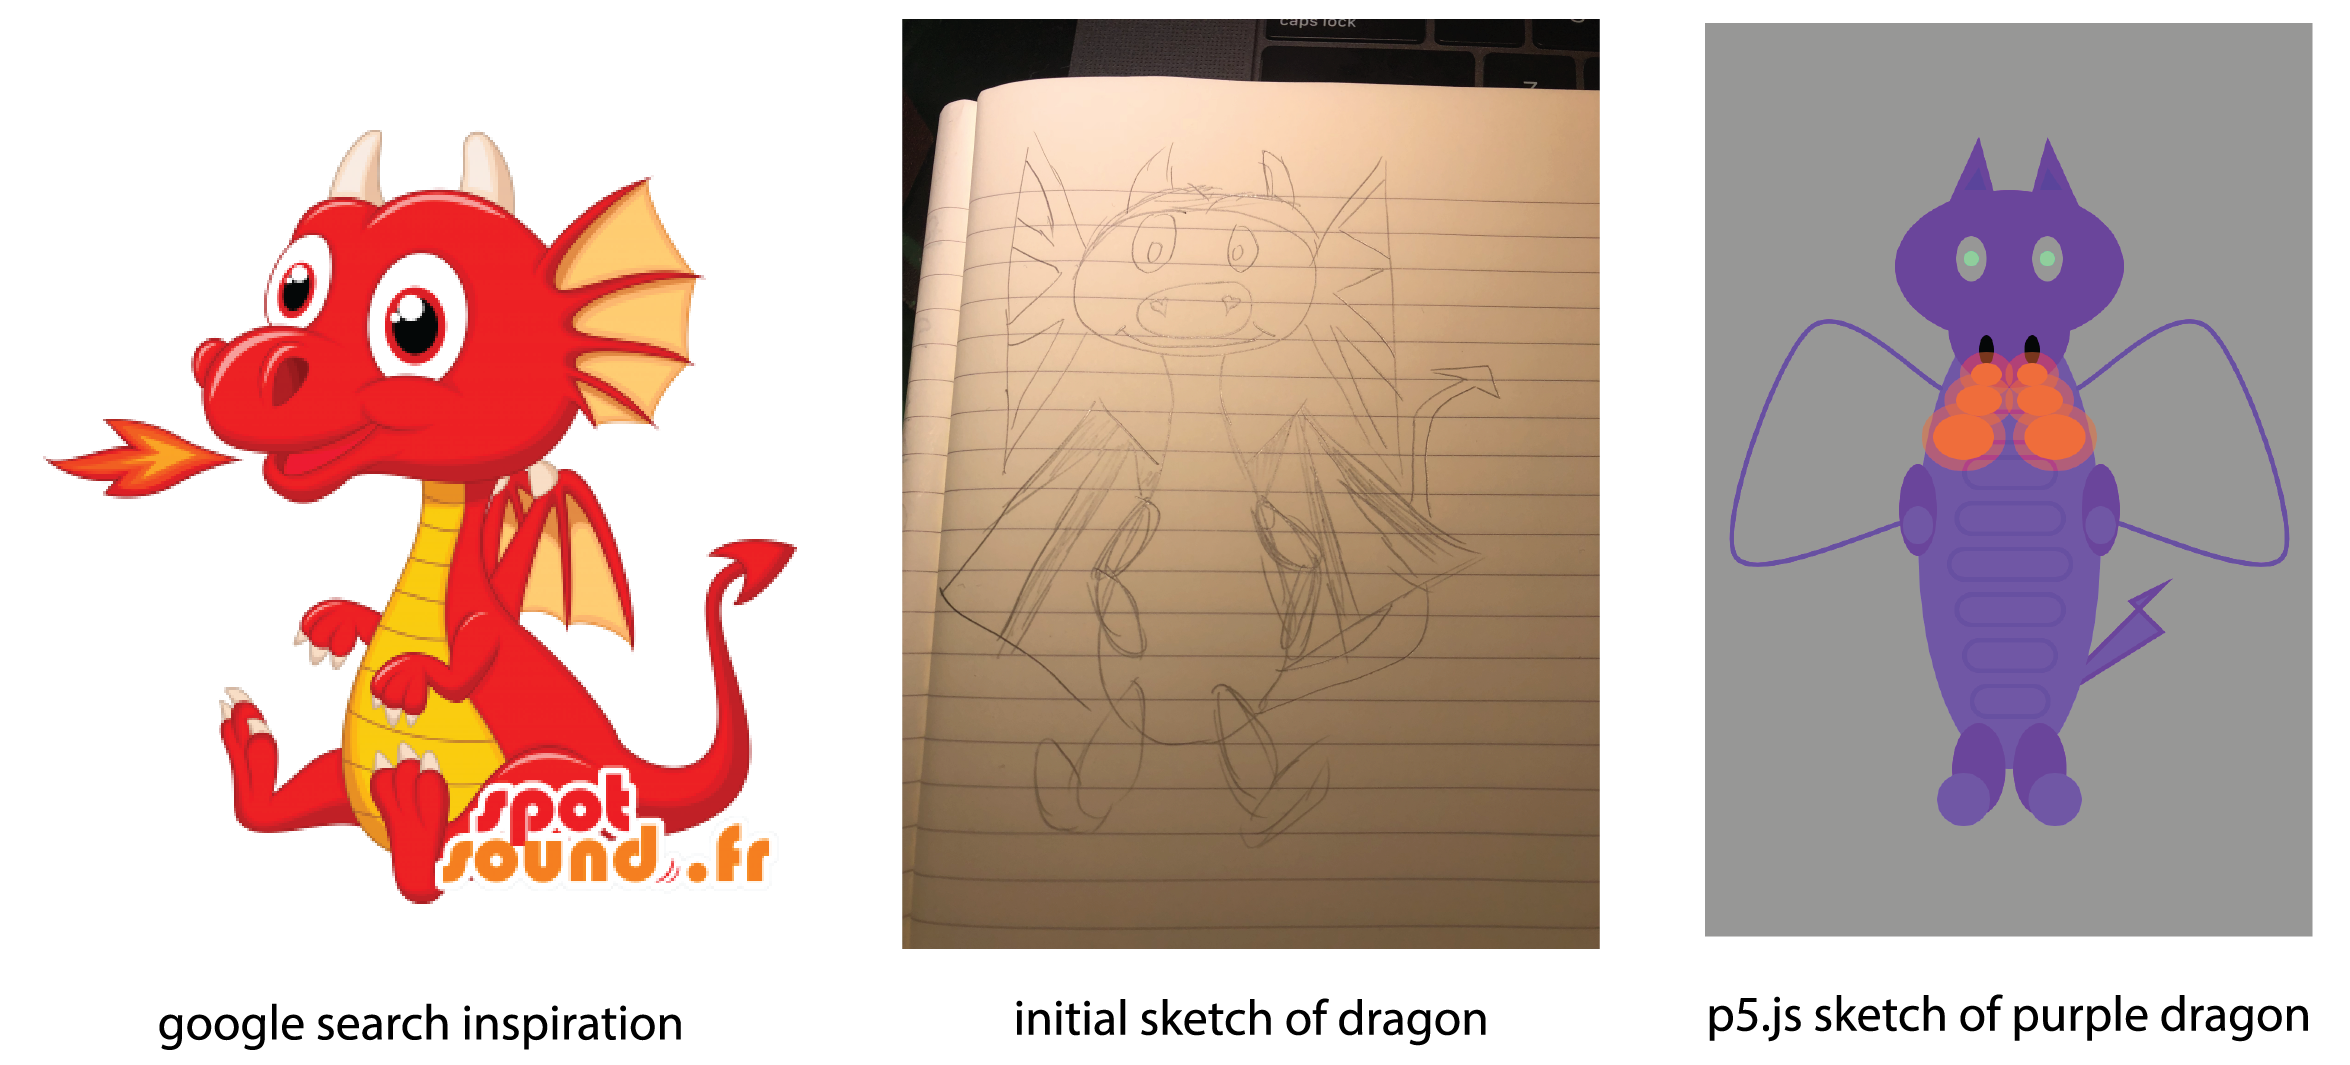 journey of the purple dragon; from inspiration -> sketch ->drawing